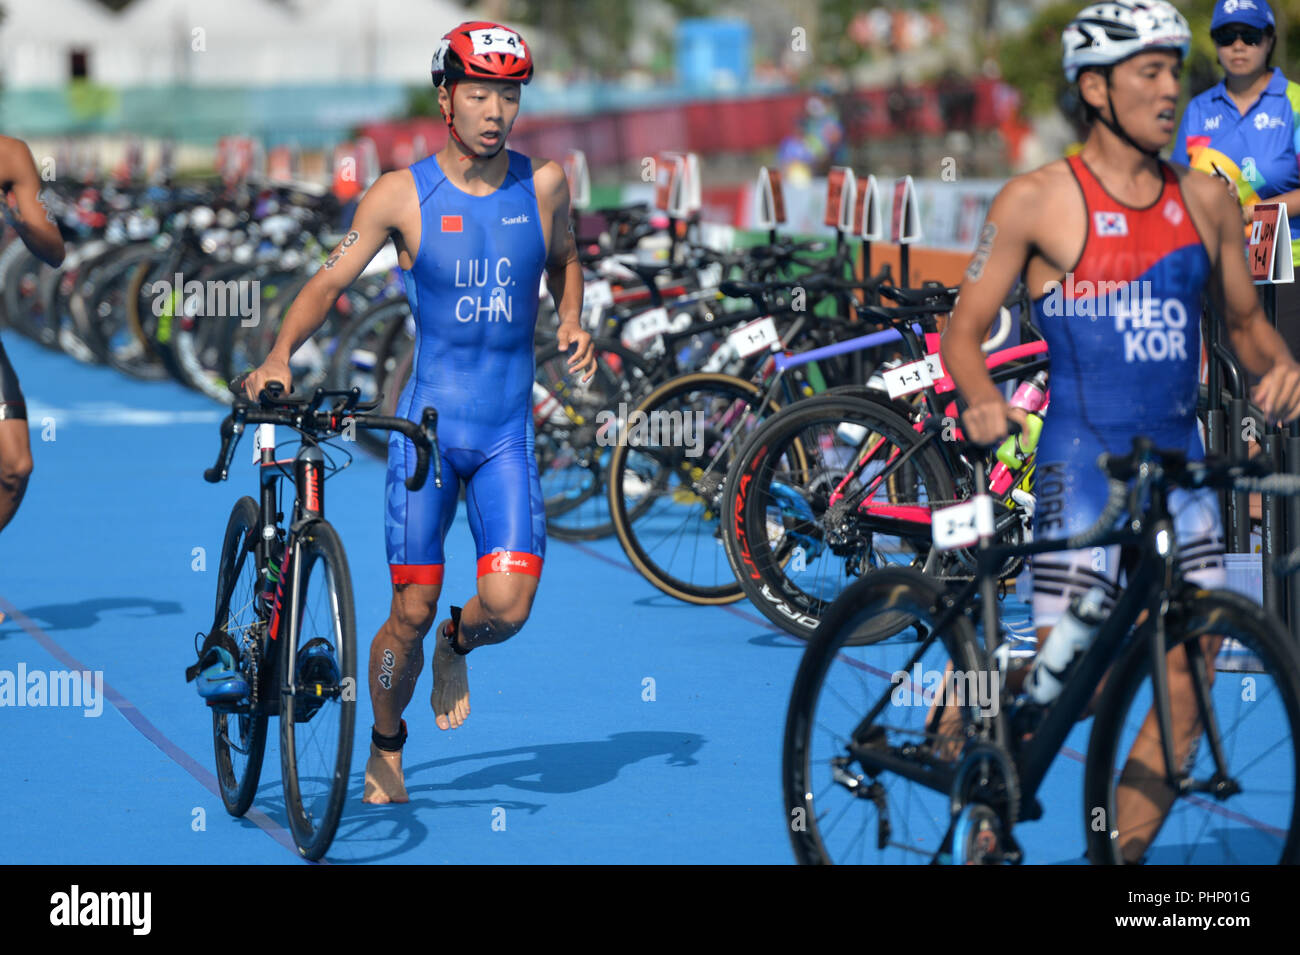 Palembang, Indonesia. 2nd Sep, 2018. Liu Chen (L) of China competes during mixed relay of Triathlon at the 18th Asian Games in Palembang, Indonesia, Sept. 2, 2018. Credit: Veri Sanovri/Xinhua/Alamy Live News - Stock Image